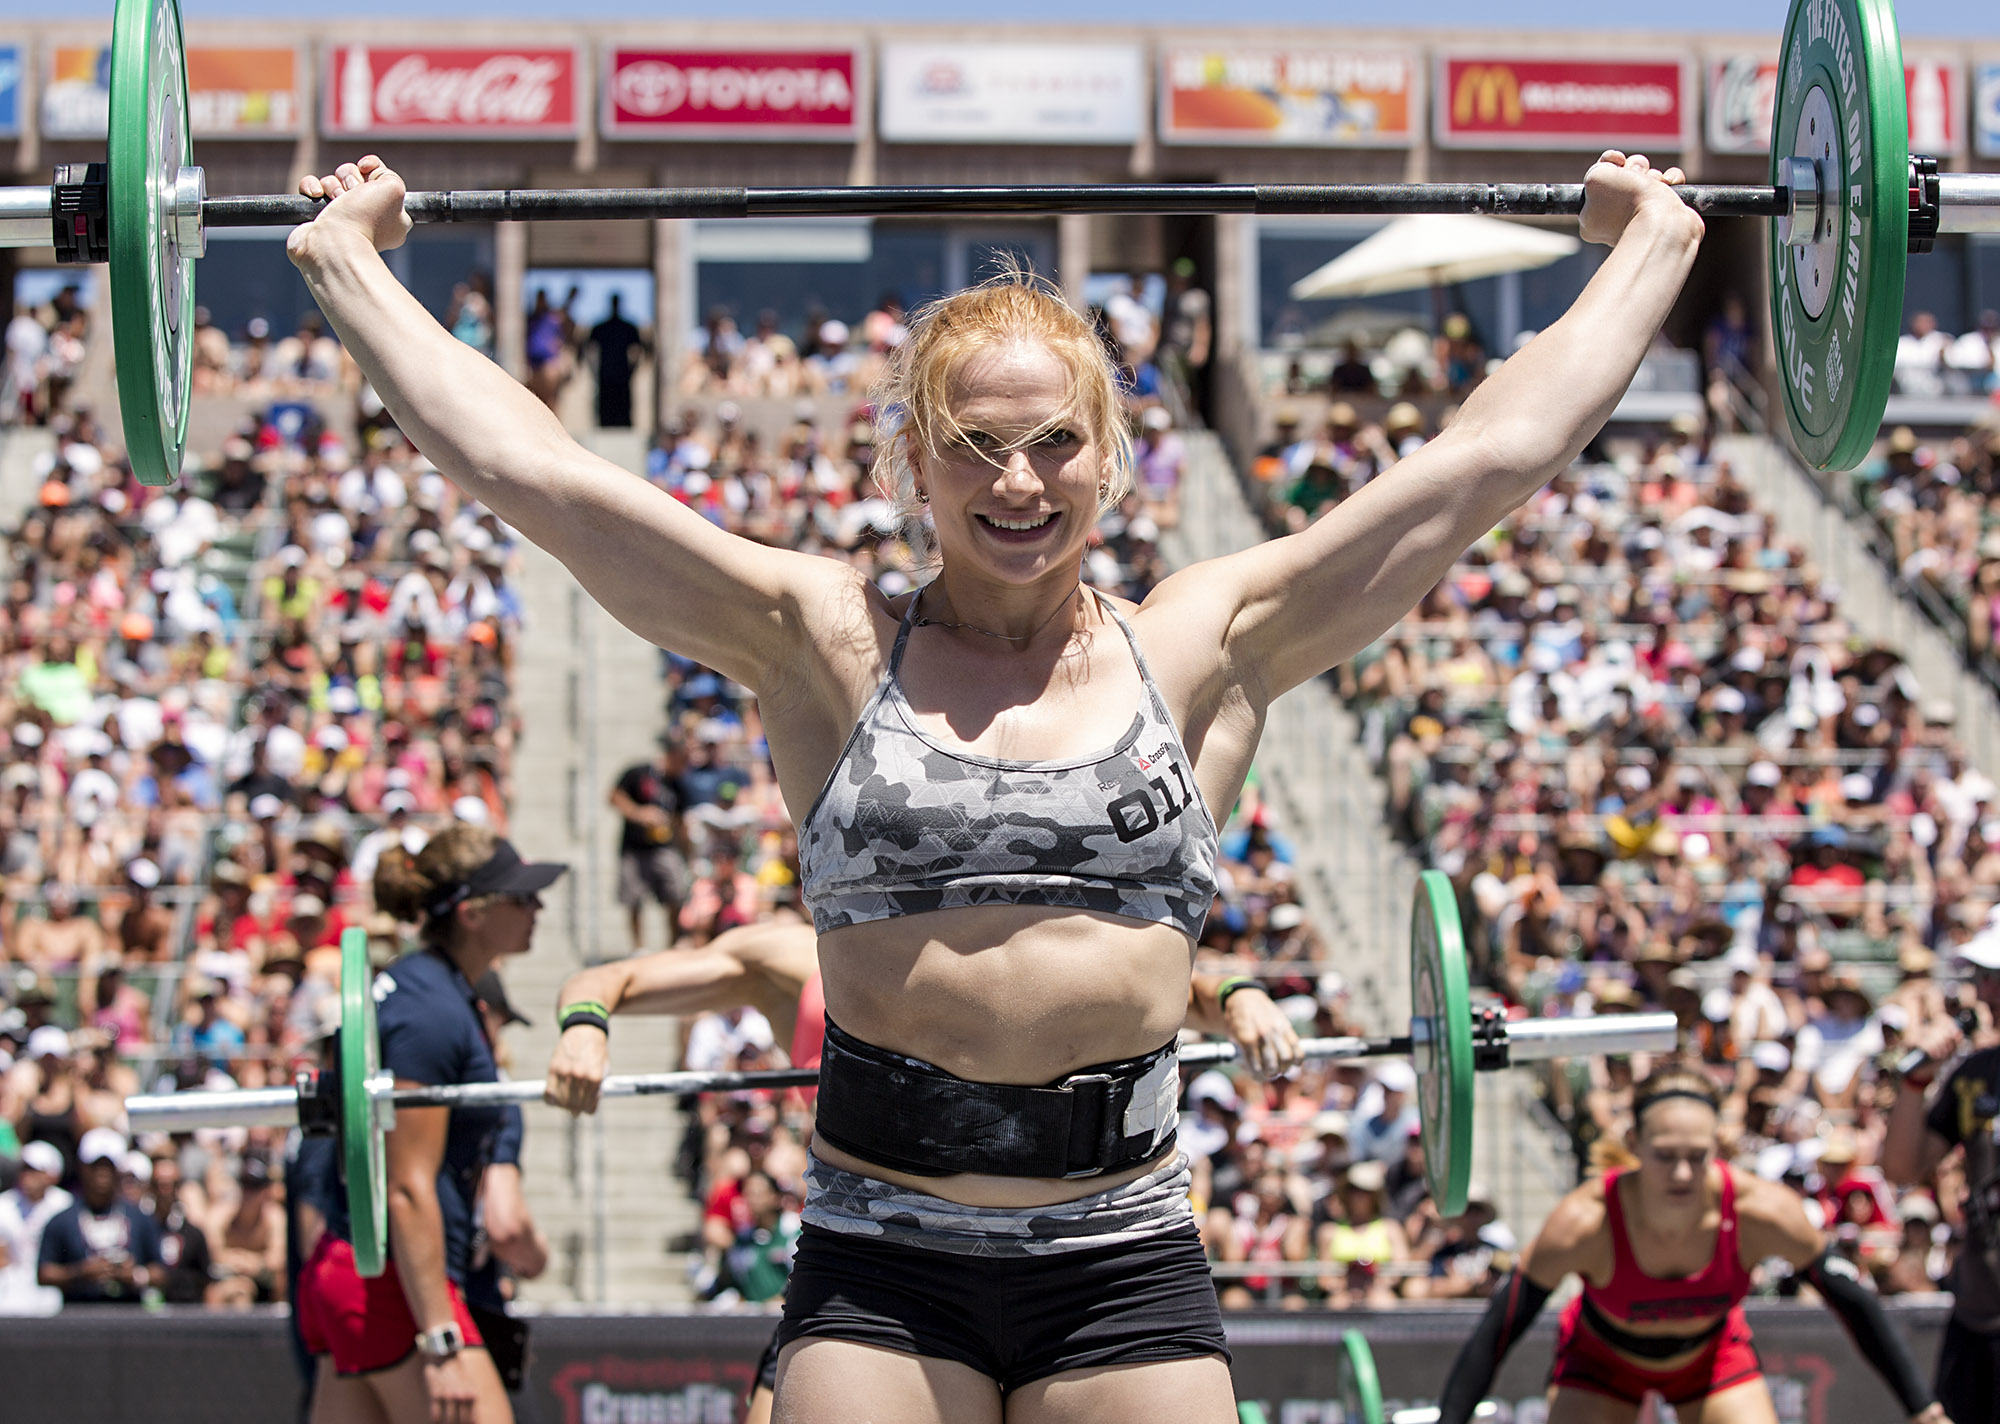 Thorisdottir hails from Iceland where she participated in gymnastics, dance and pole-vaulting growing up, and has done CrossFit for about two to four years. She is the only female to win the CrossFit Games twice, with titles in 2011 and 2012.